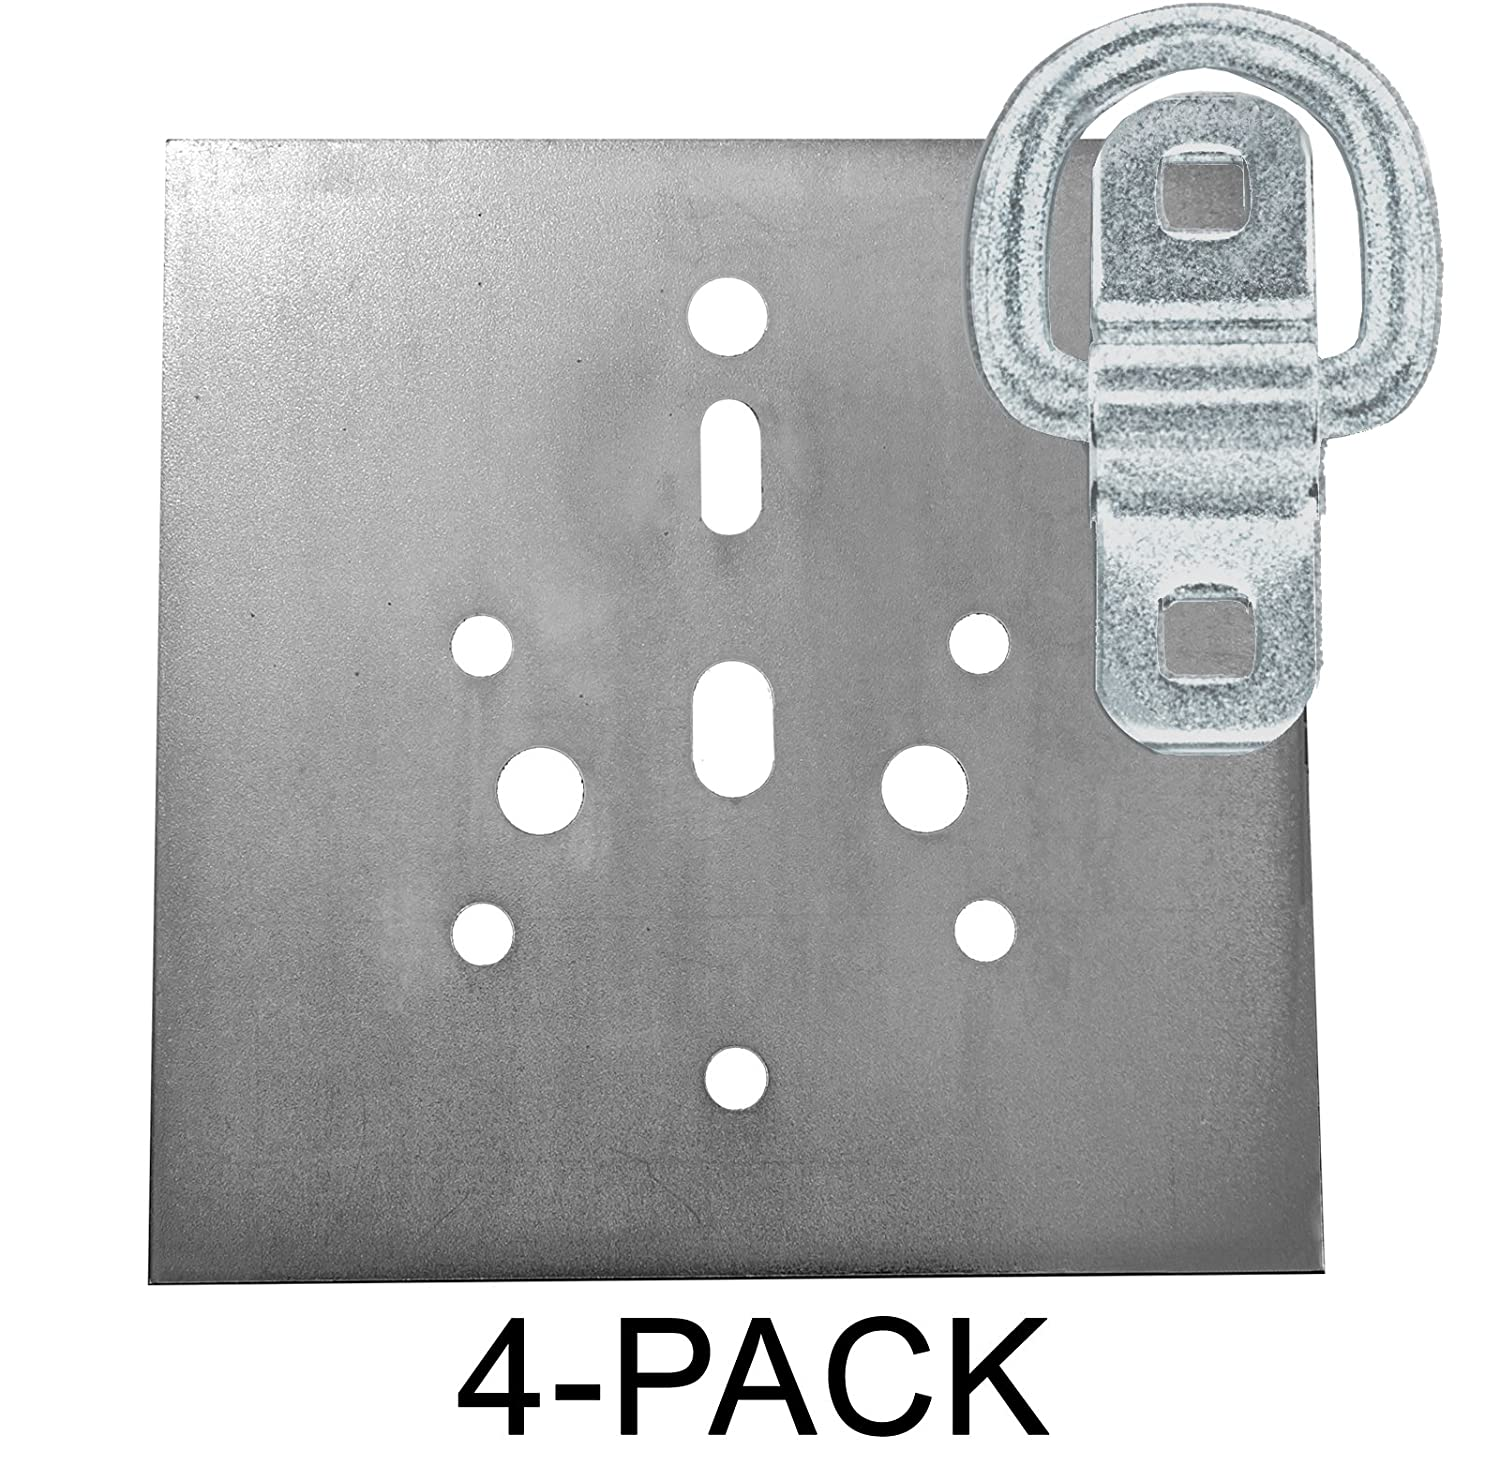 Heavy Duty USA Tiedown Anchors With Backing Plates, Surface Mount D-Ring 6,000 lb. Capacity, 12-Pack Buyers Products 80138-06-12B